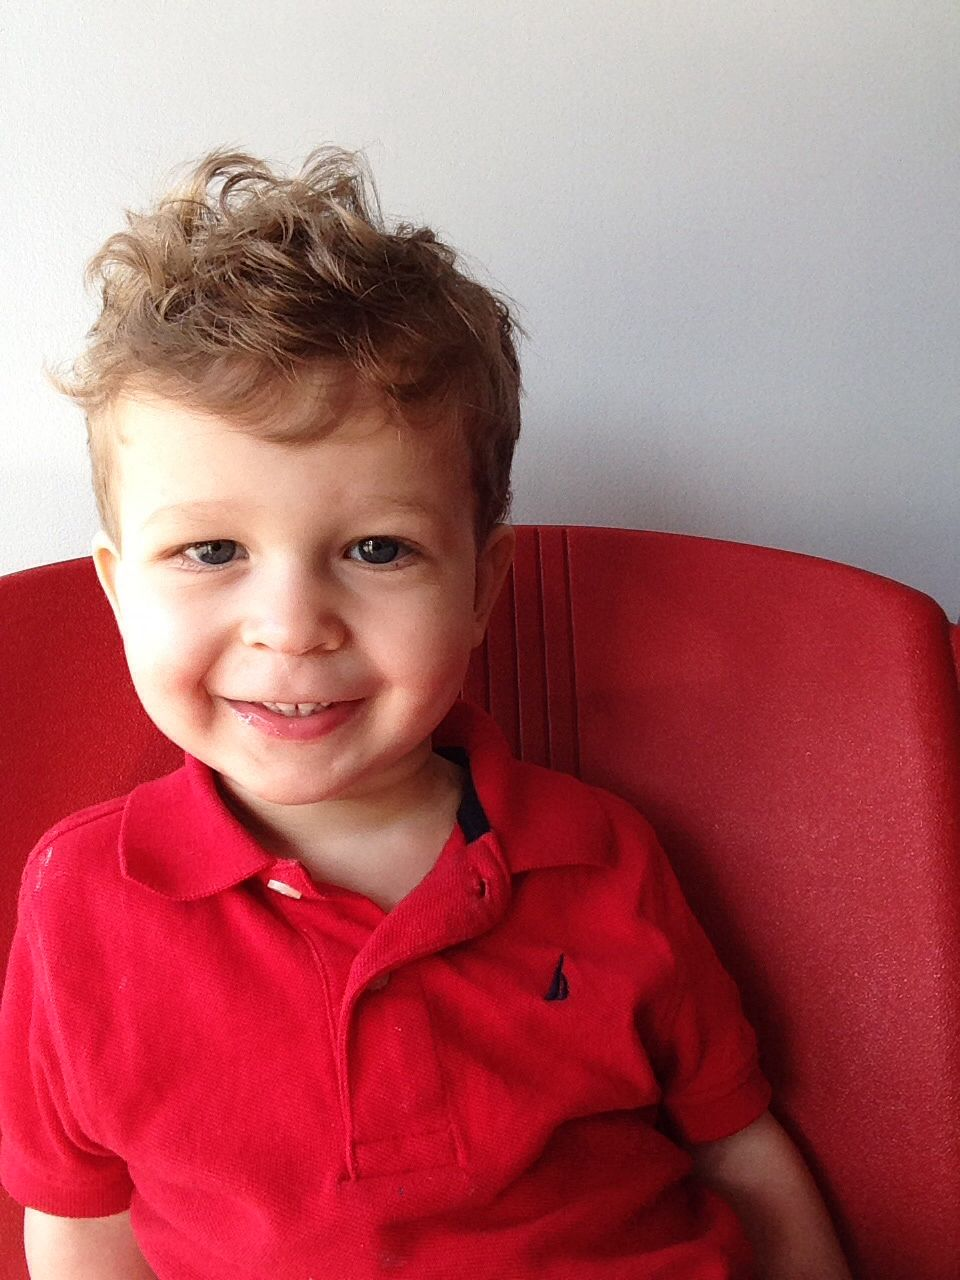 Pin By Michelle Easton On Toddler Stuff Toddler Hairstyles Boy Boy Hairstyles Baby Boy Hairstyles